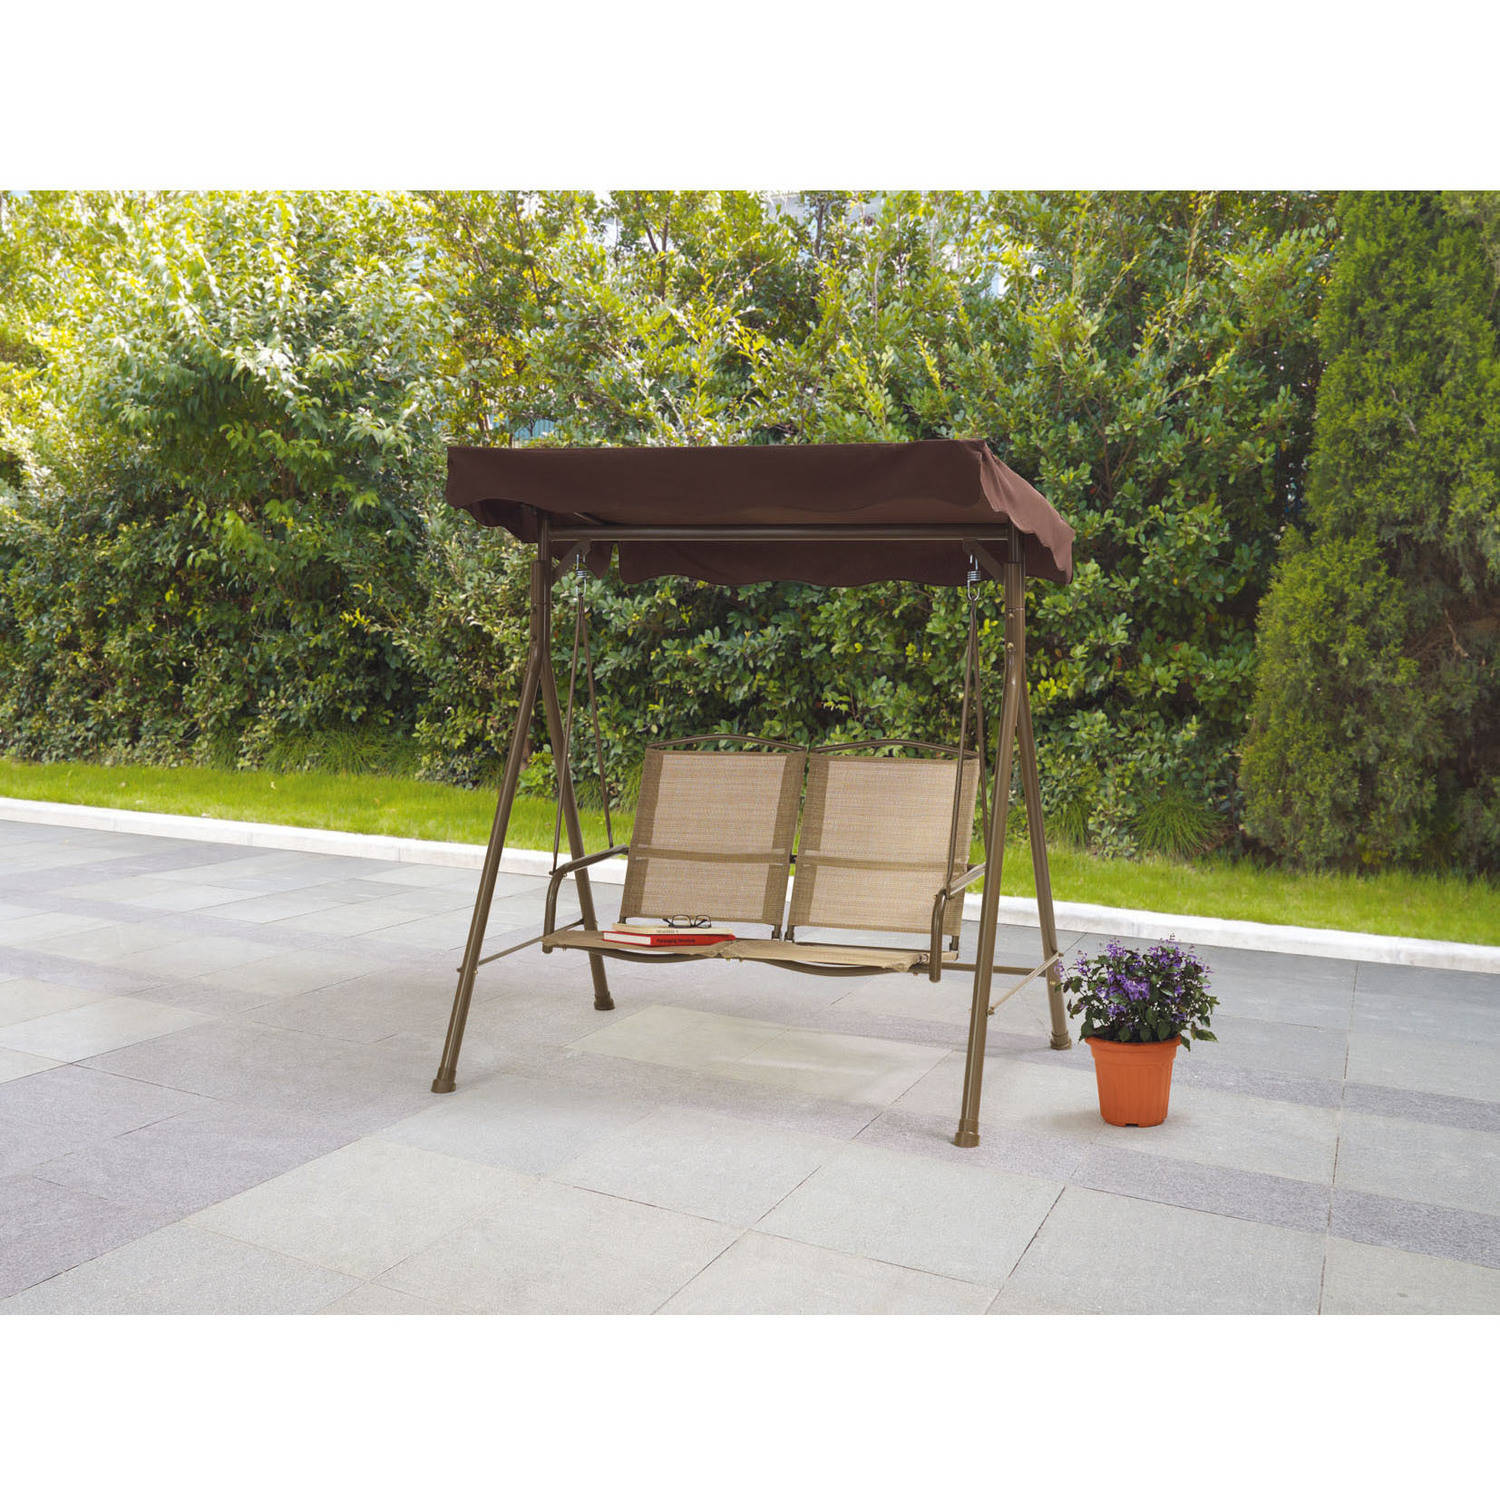 Mainstays Sand Dune 2-Seat Sling Canopy Porch Swing by Keysheen Industry (Shanghai) Co., Ltd.